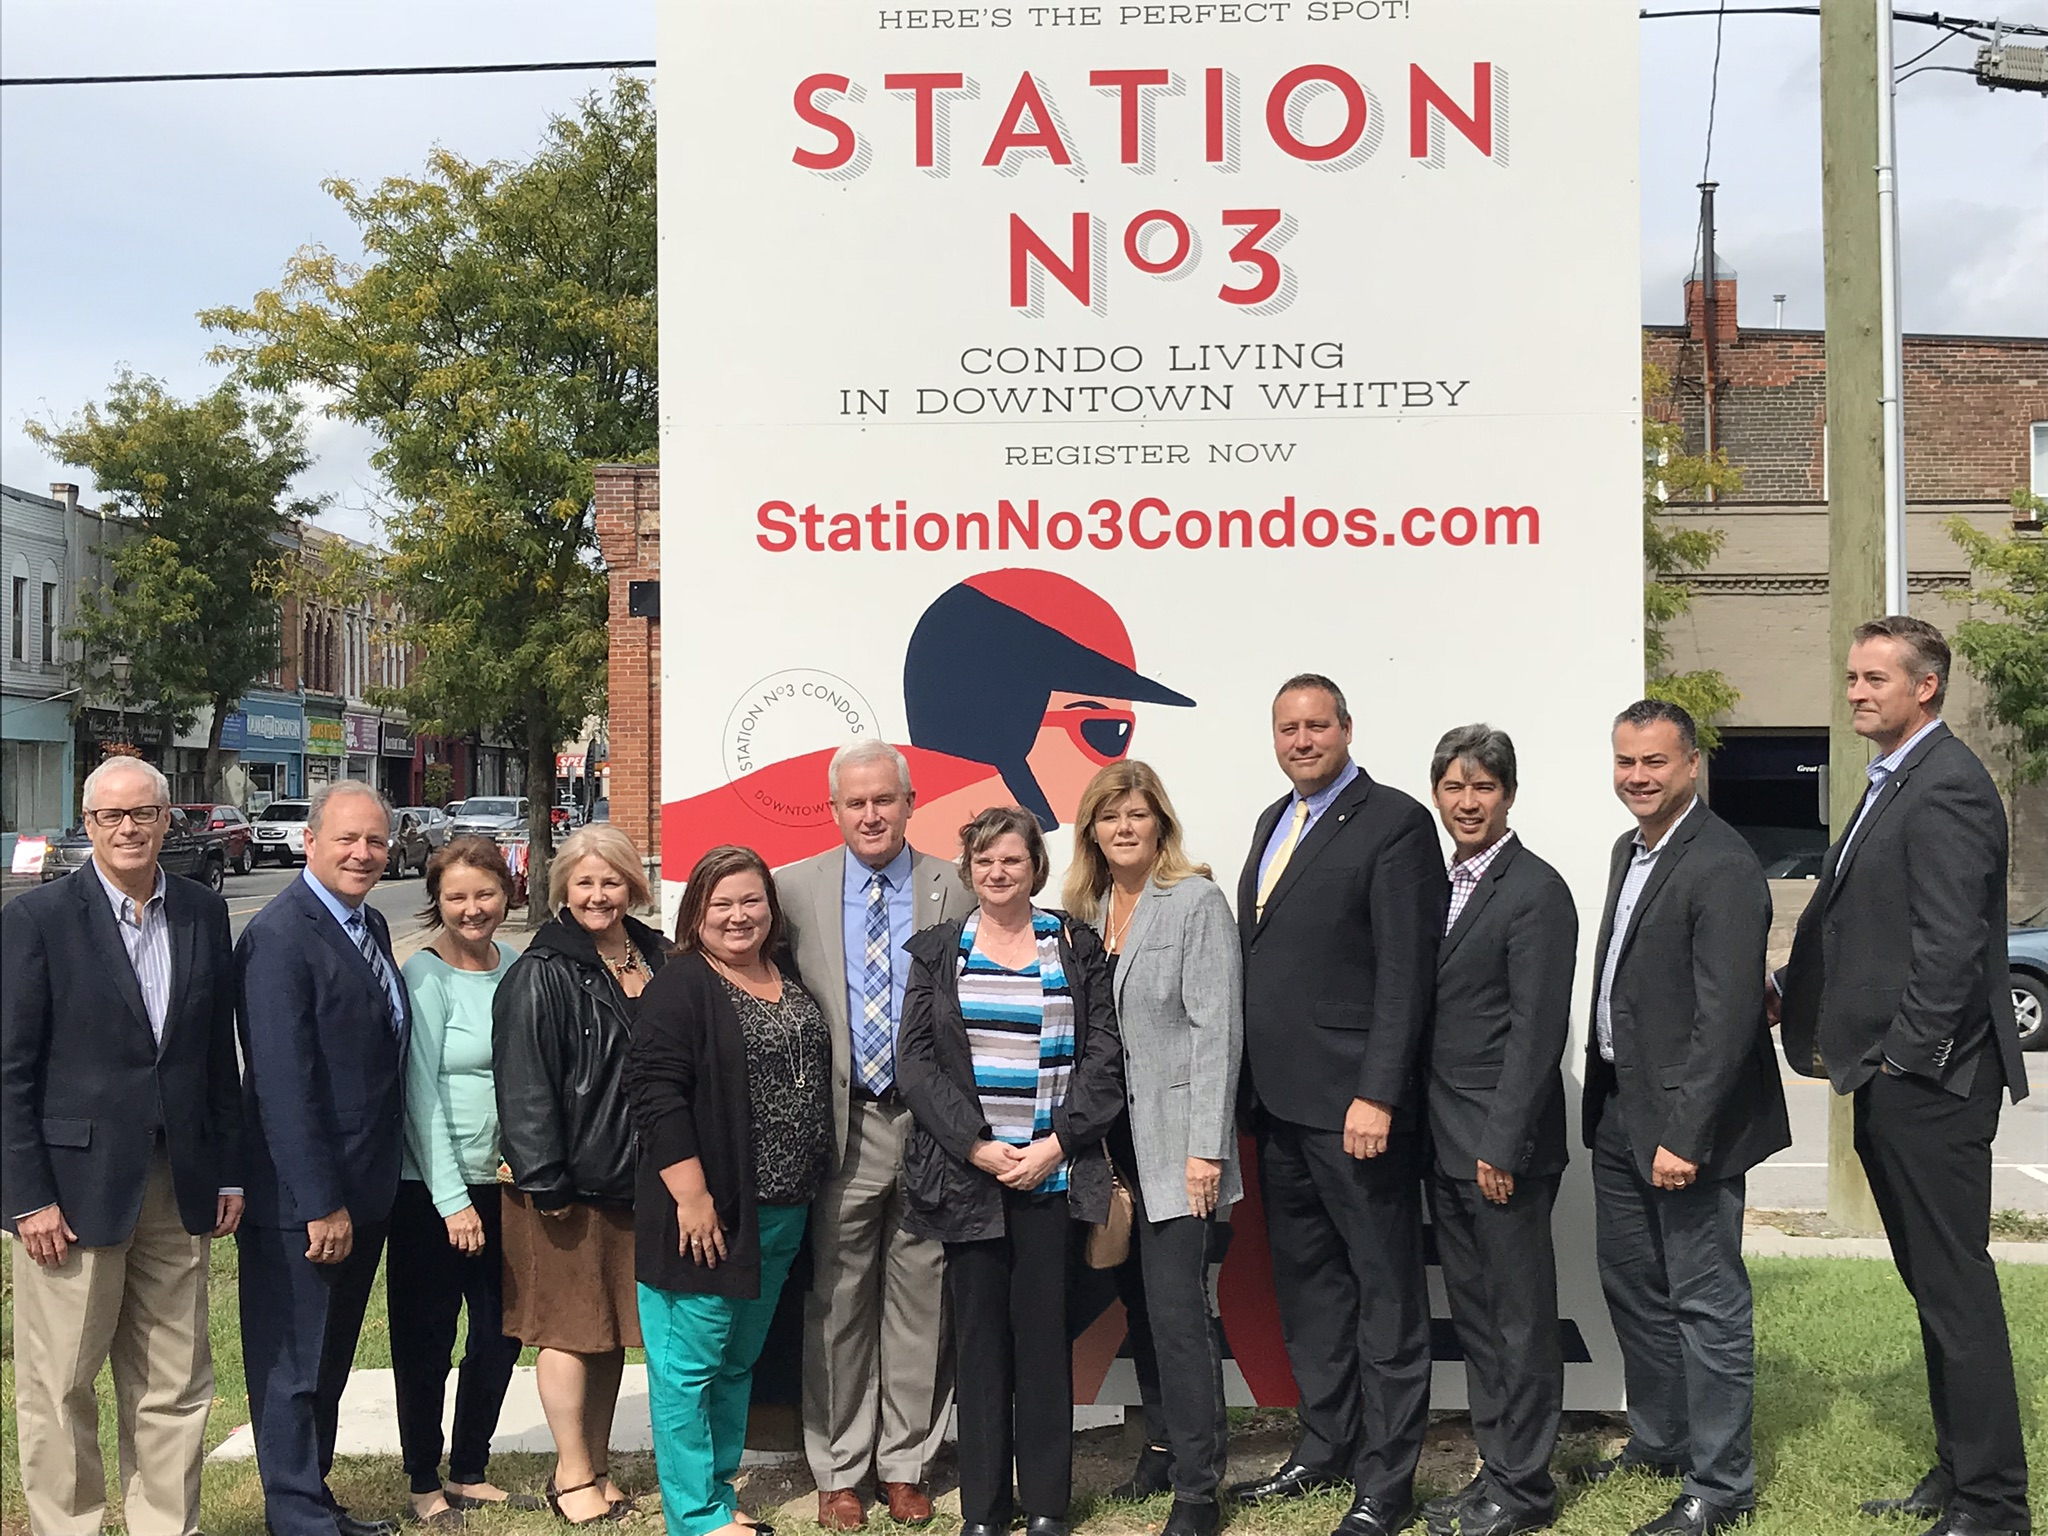 Station No. 3 Group Photo